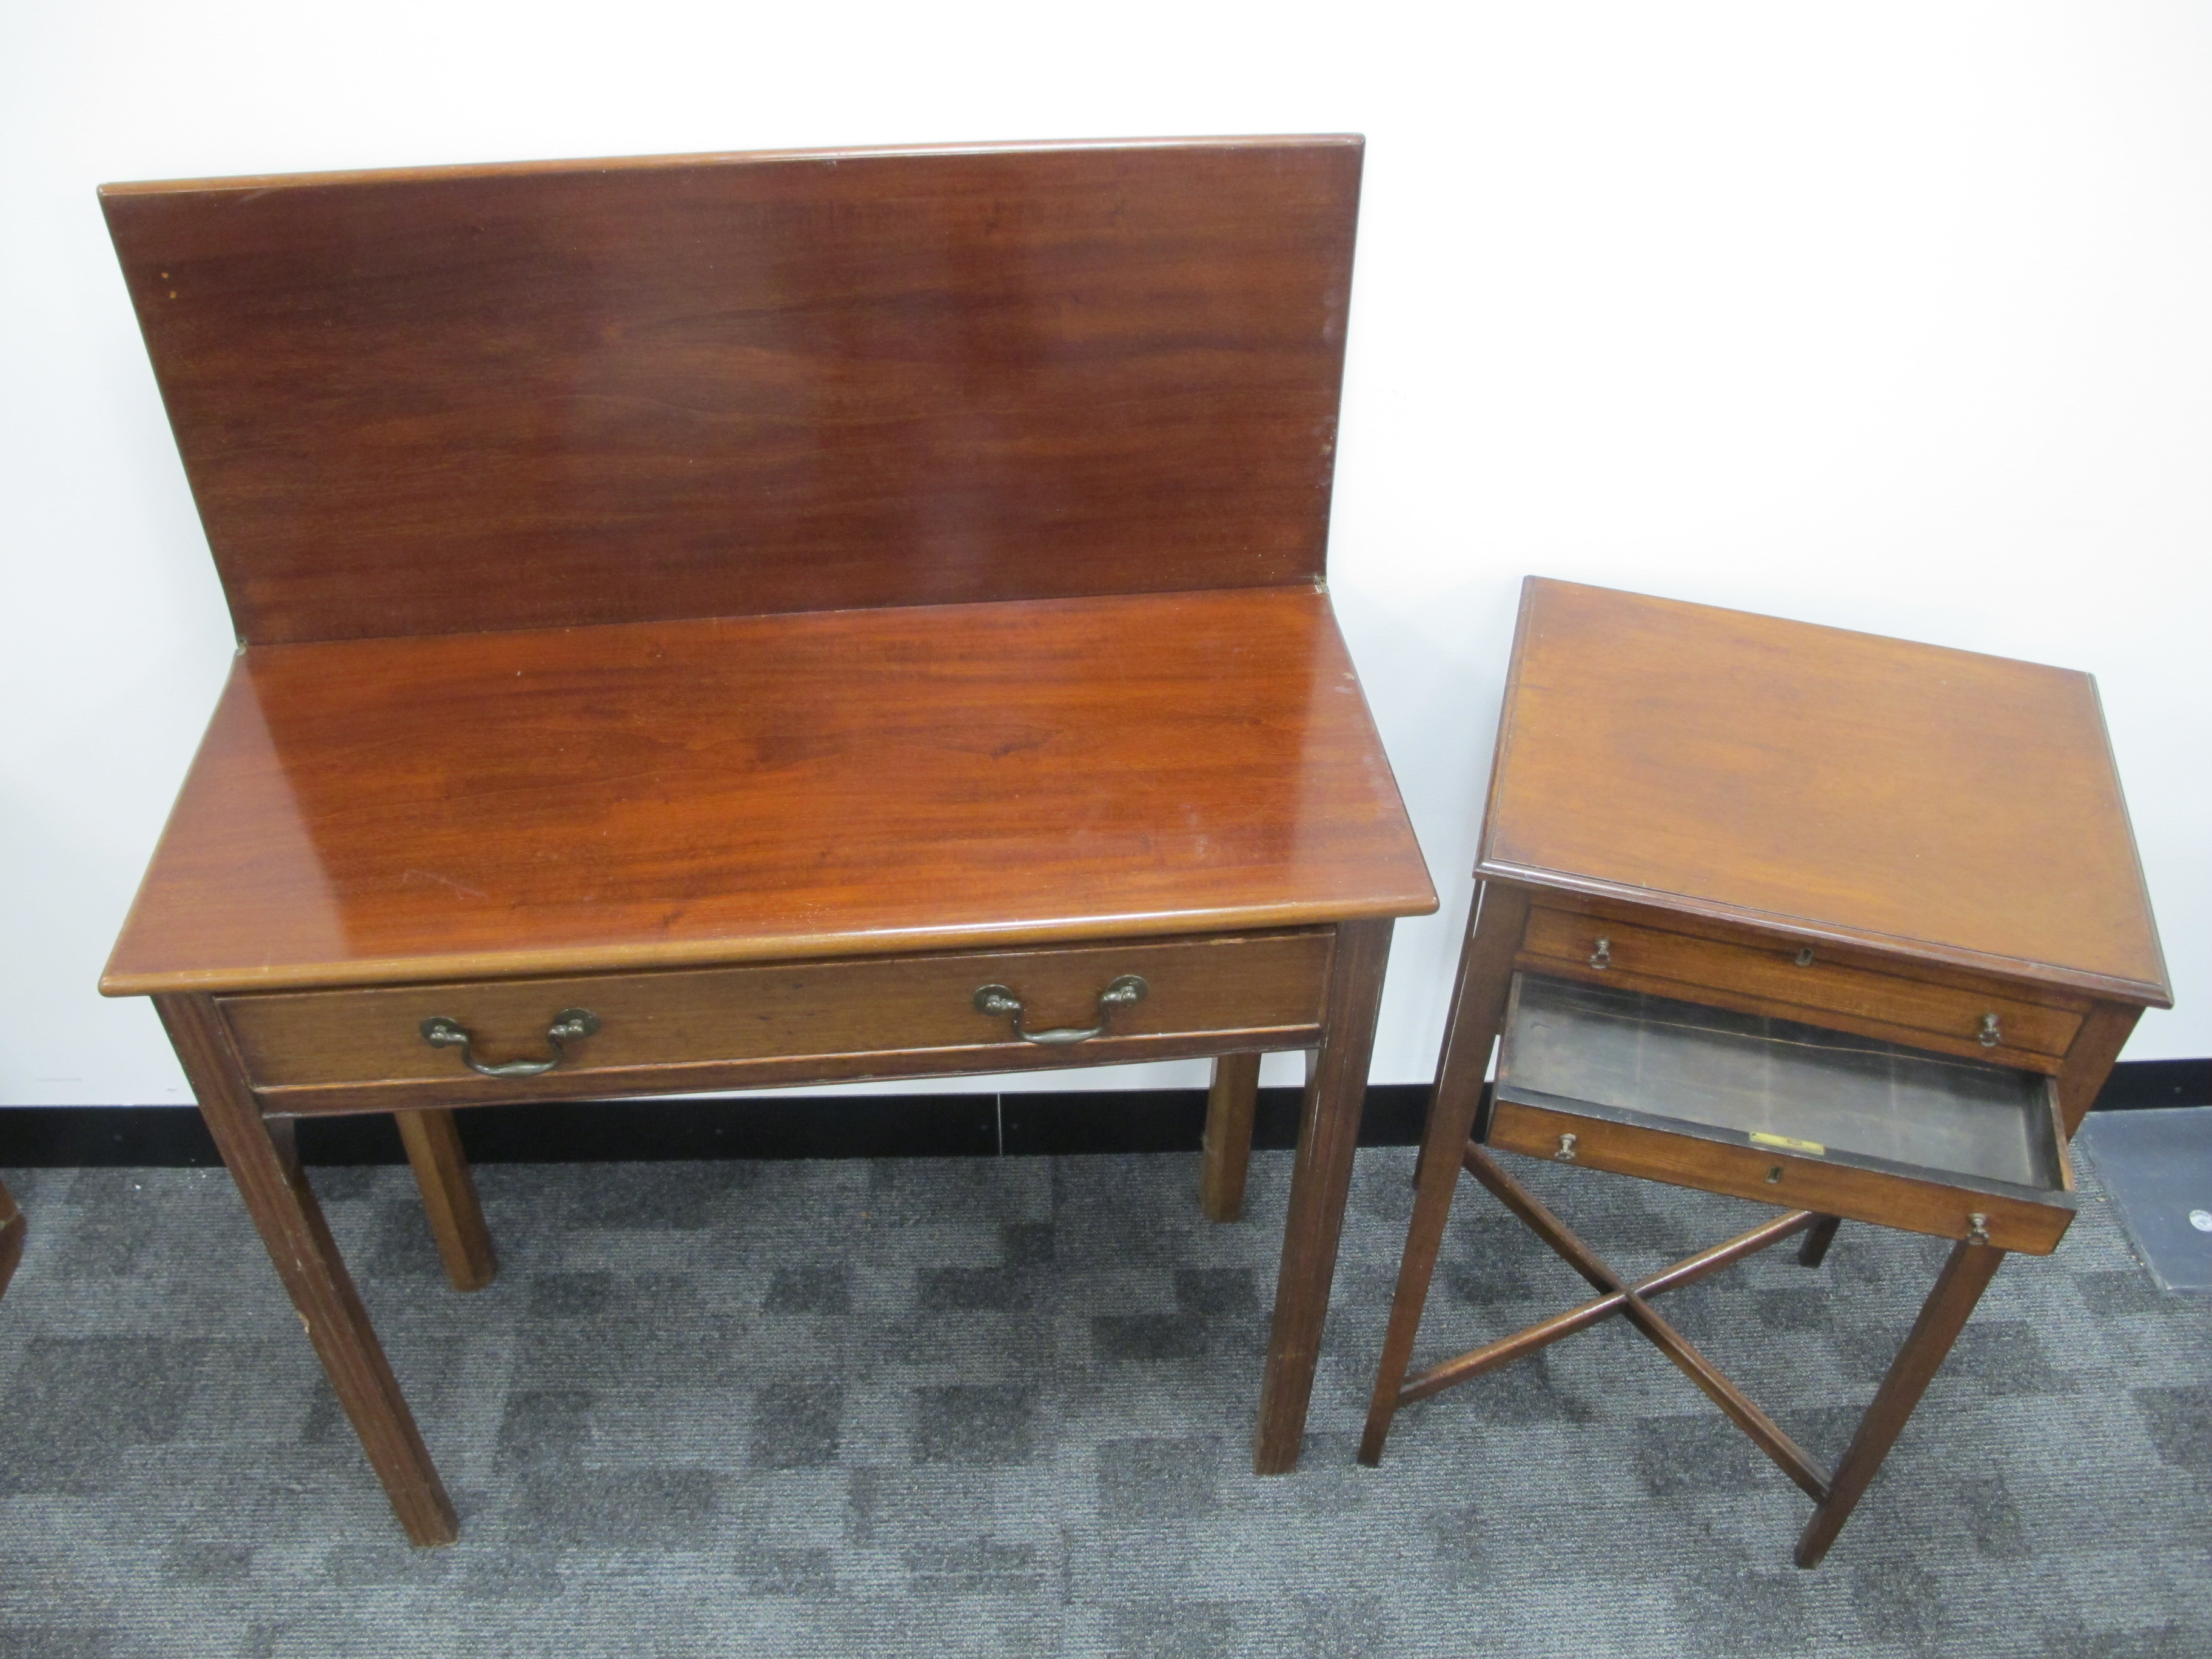 Lot 450 - A 19th Century mahogany work table, with hinged rising flap, one long and one dummy drawer, plus two